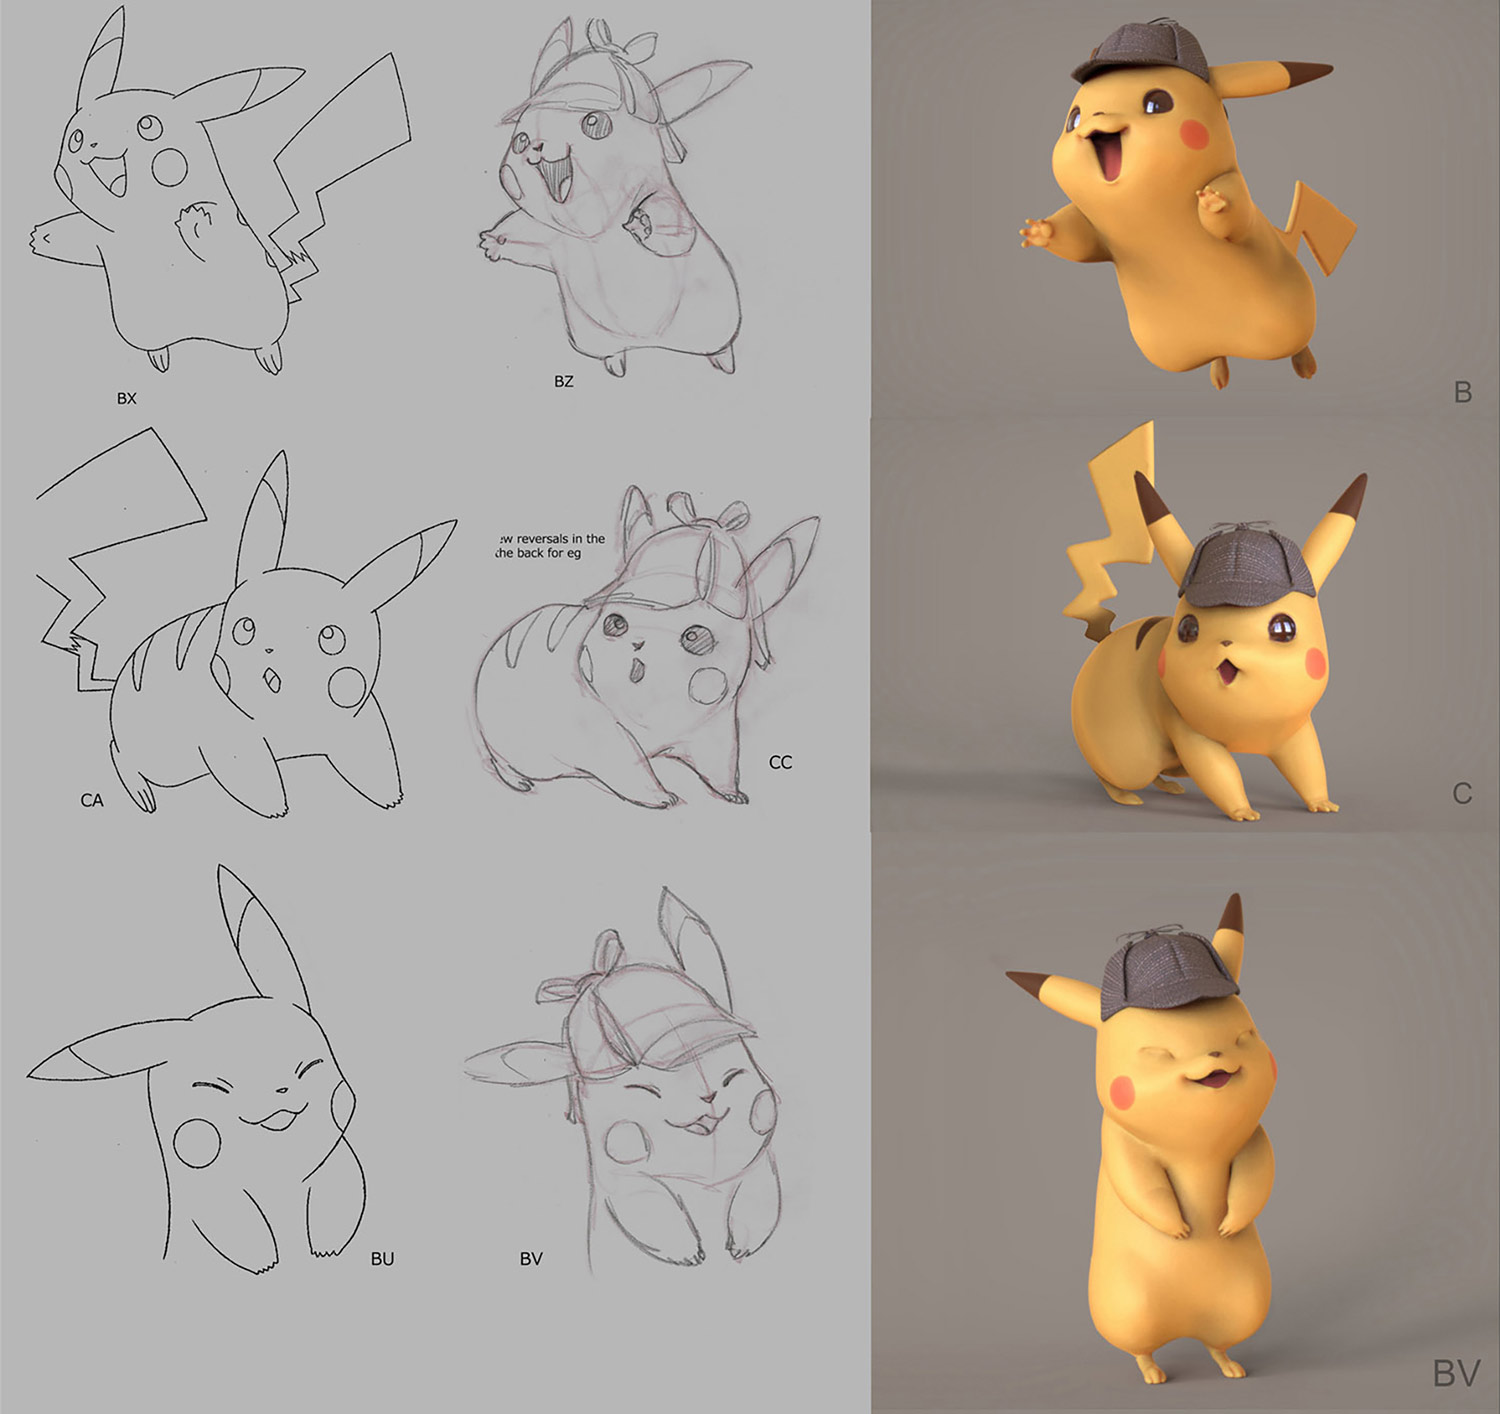 Each character went through numerous design phases involving the director Rob Letterman, The Pokémon Company, and the design/animation teams.